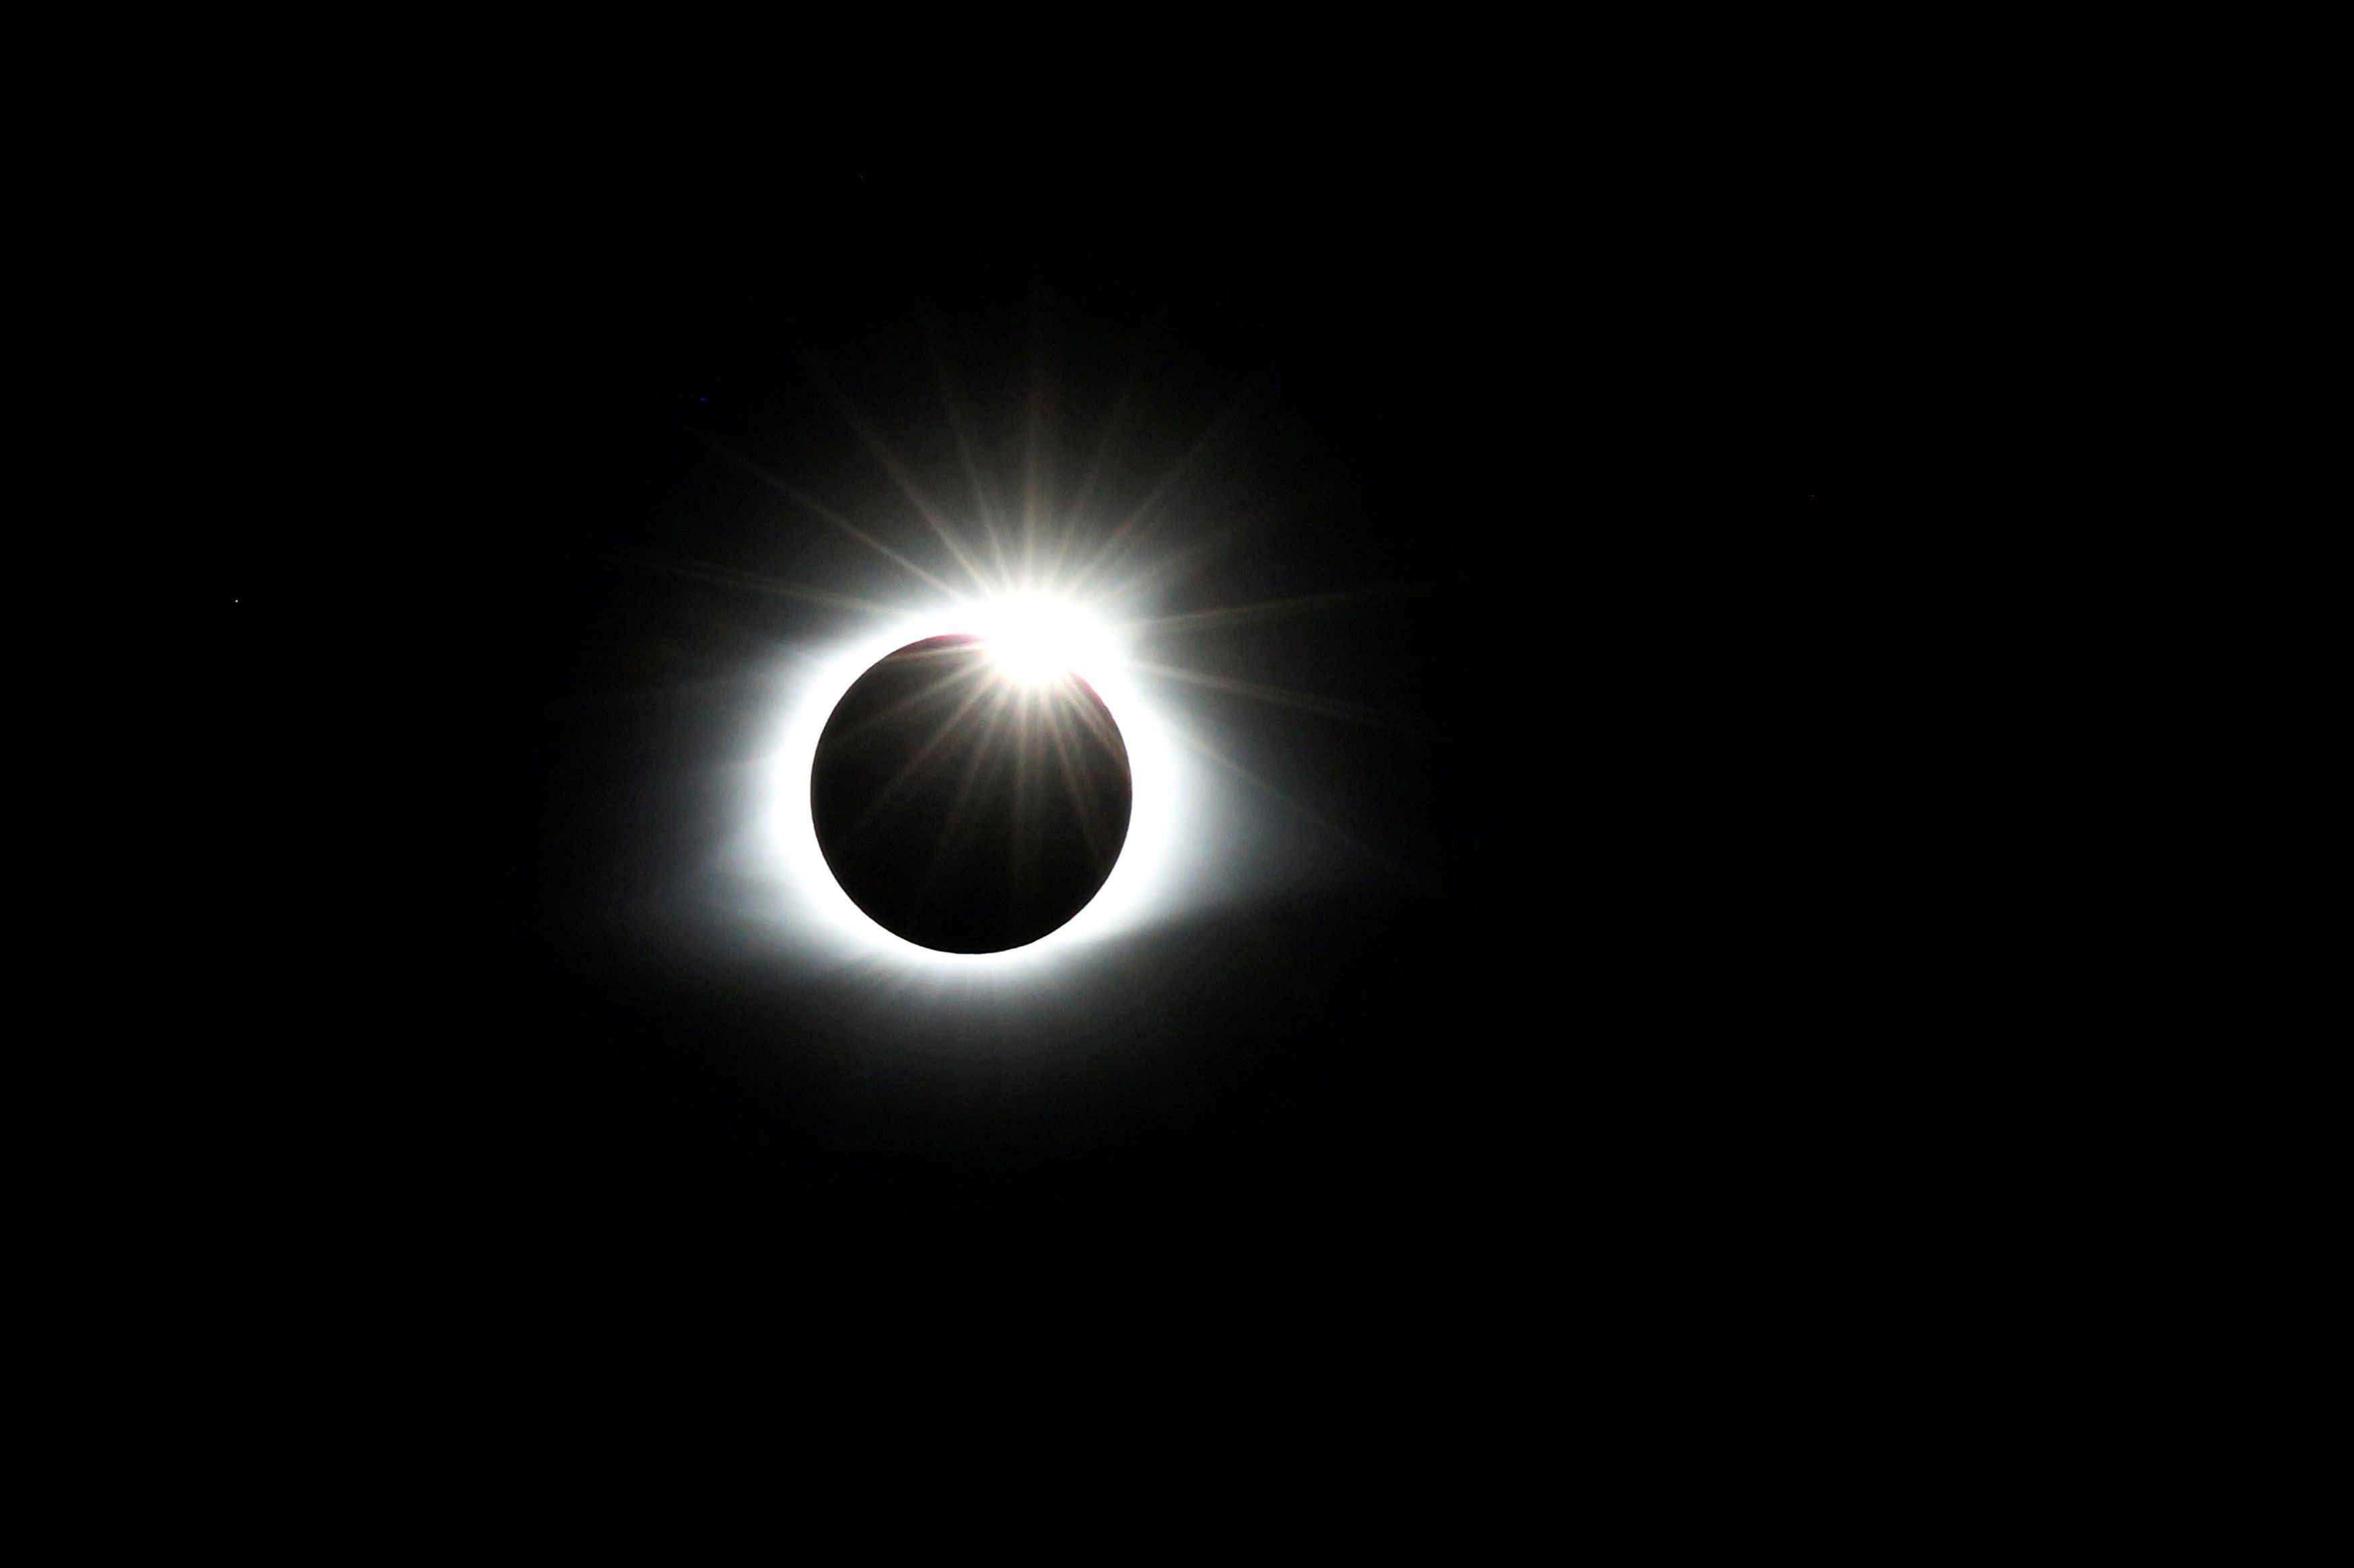 """The solar eclipse creates the effect of a diamond ring at totality as seen from Clingmans Dome, which at 6,643 feet (2,025m) is the highest point in the Great Smoky Mountains National Park, Tennessee, U.S. August 21, 2017. Location coordinates for this image are 35º33'24"""" N, 83º29'46"""" W. REUTERS/Jonathan Ernst     TPX IMAGES OF THE DAY"""